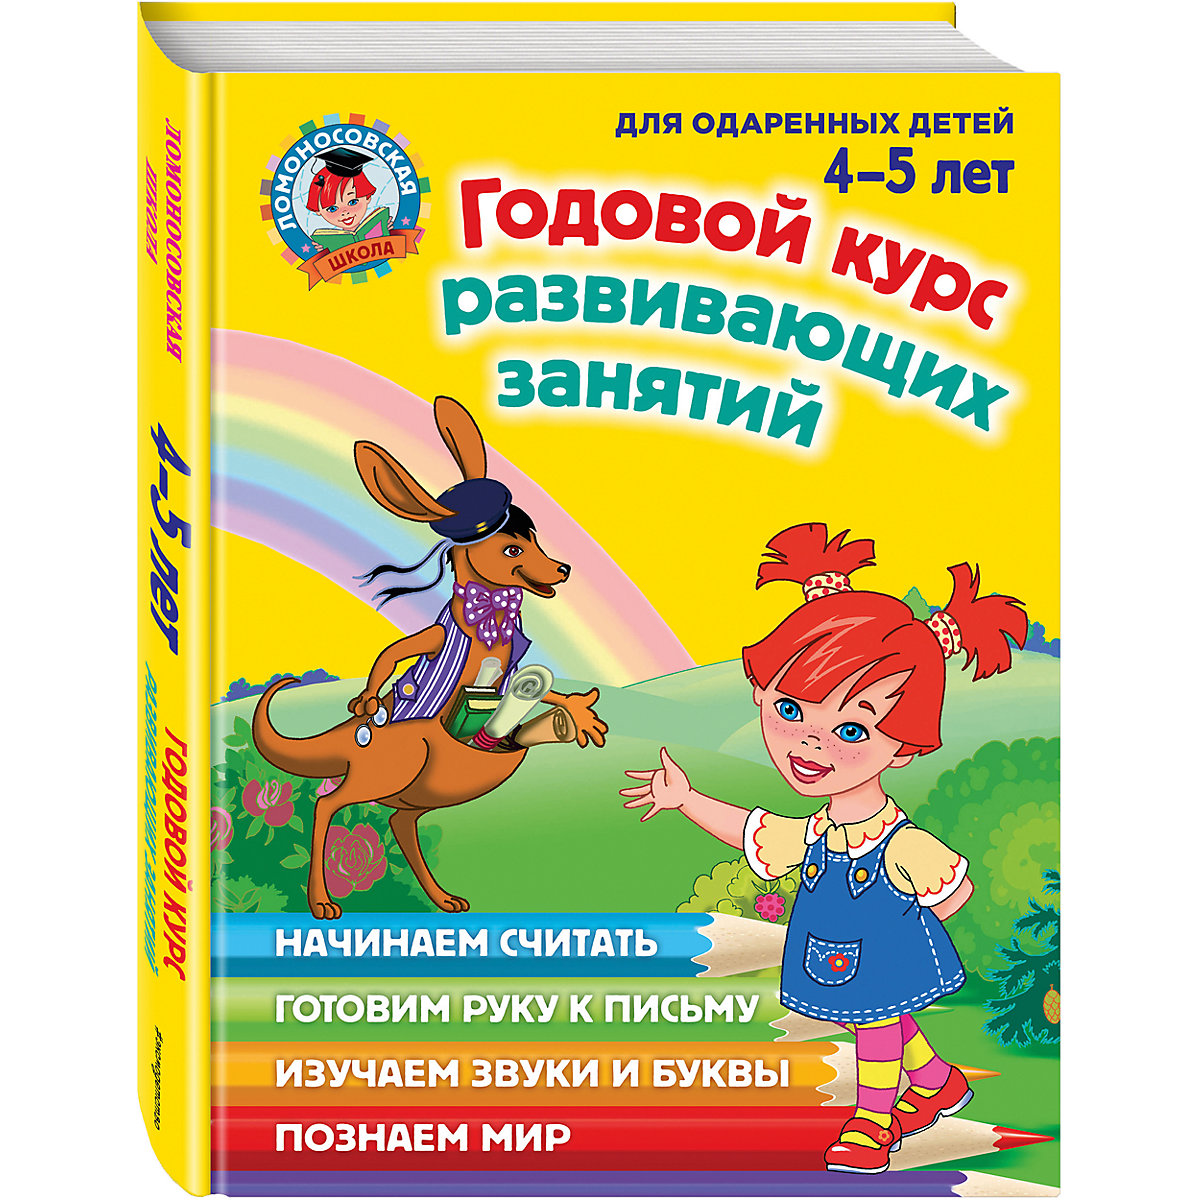 Books EKSMO 3665189 Children Education Encyclopedia Alphabet Dictionary Book For Baby MTpromo